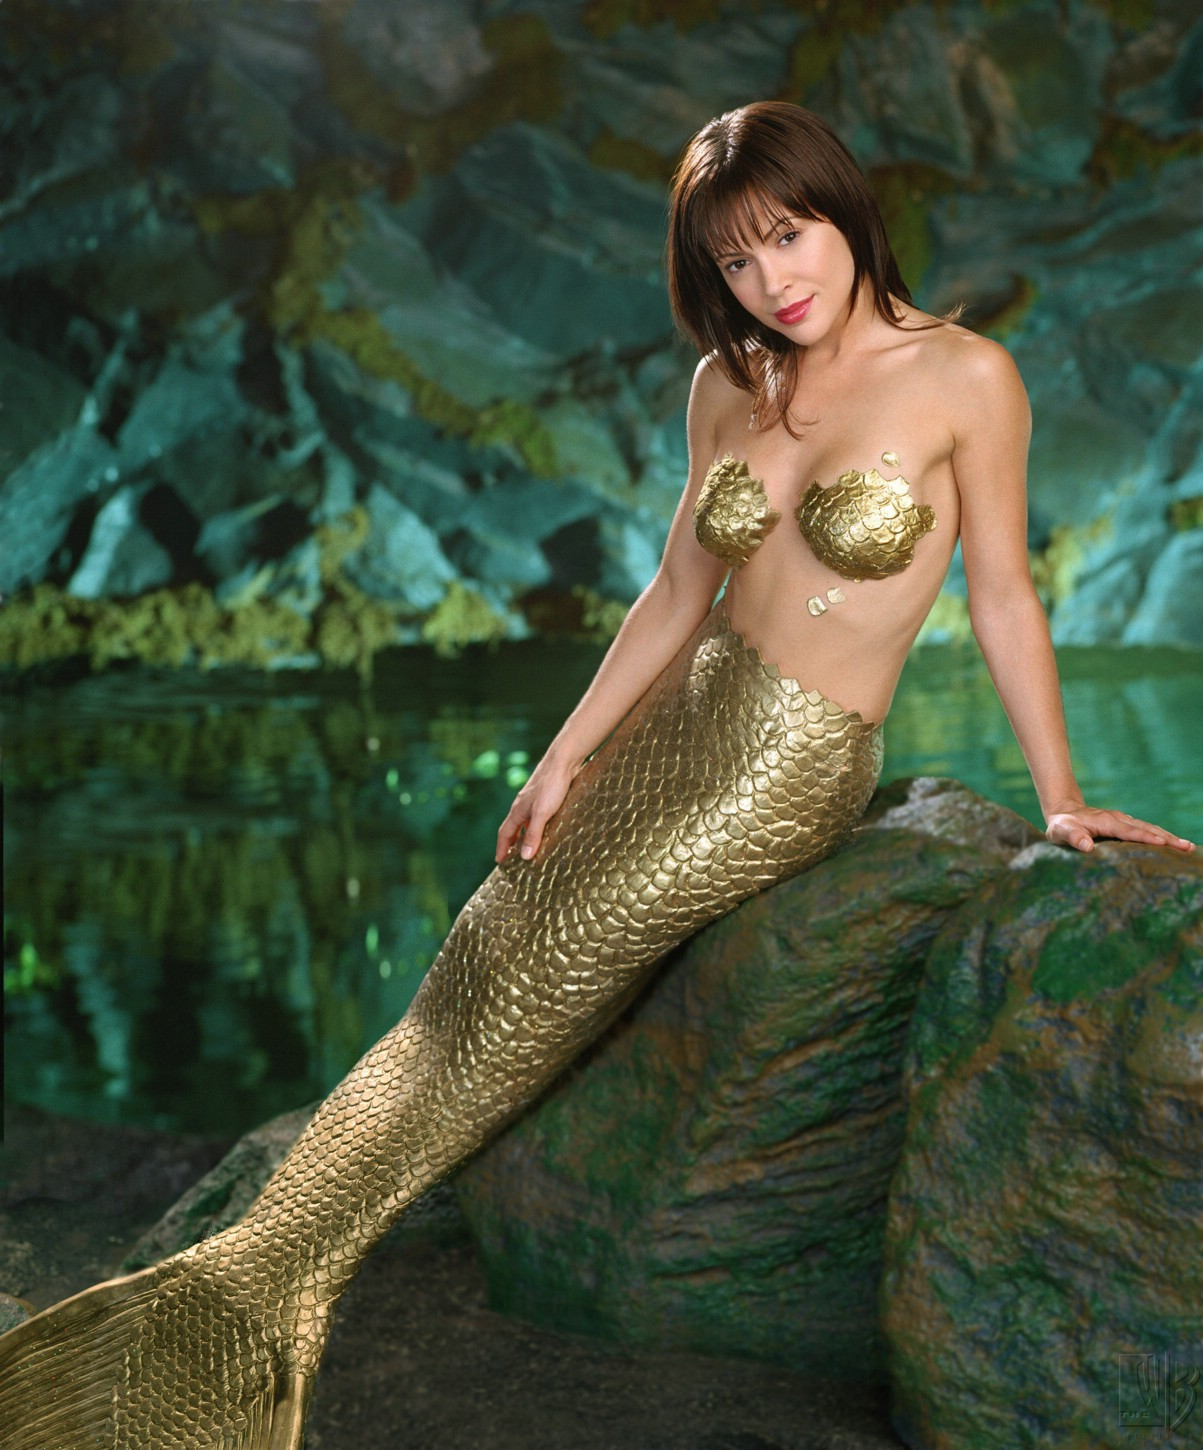 Mermaid busty fantasy cartoon gallery